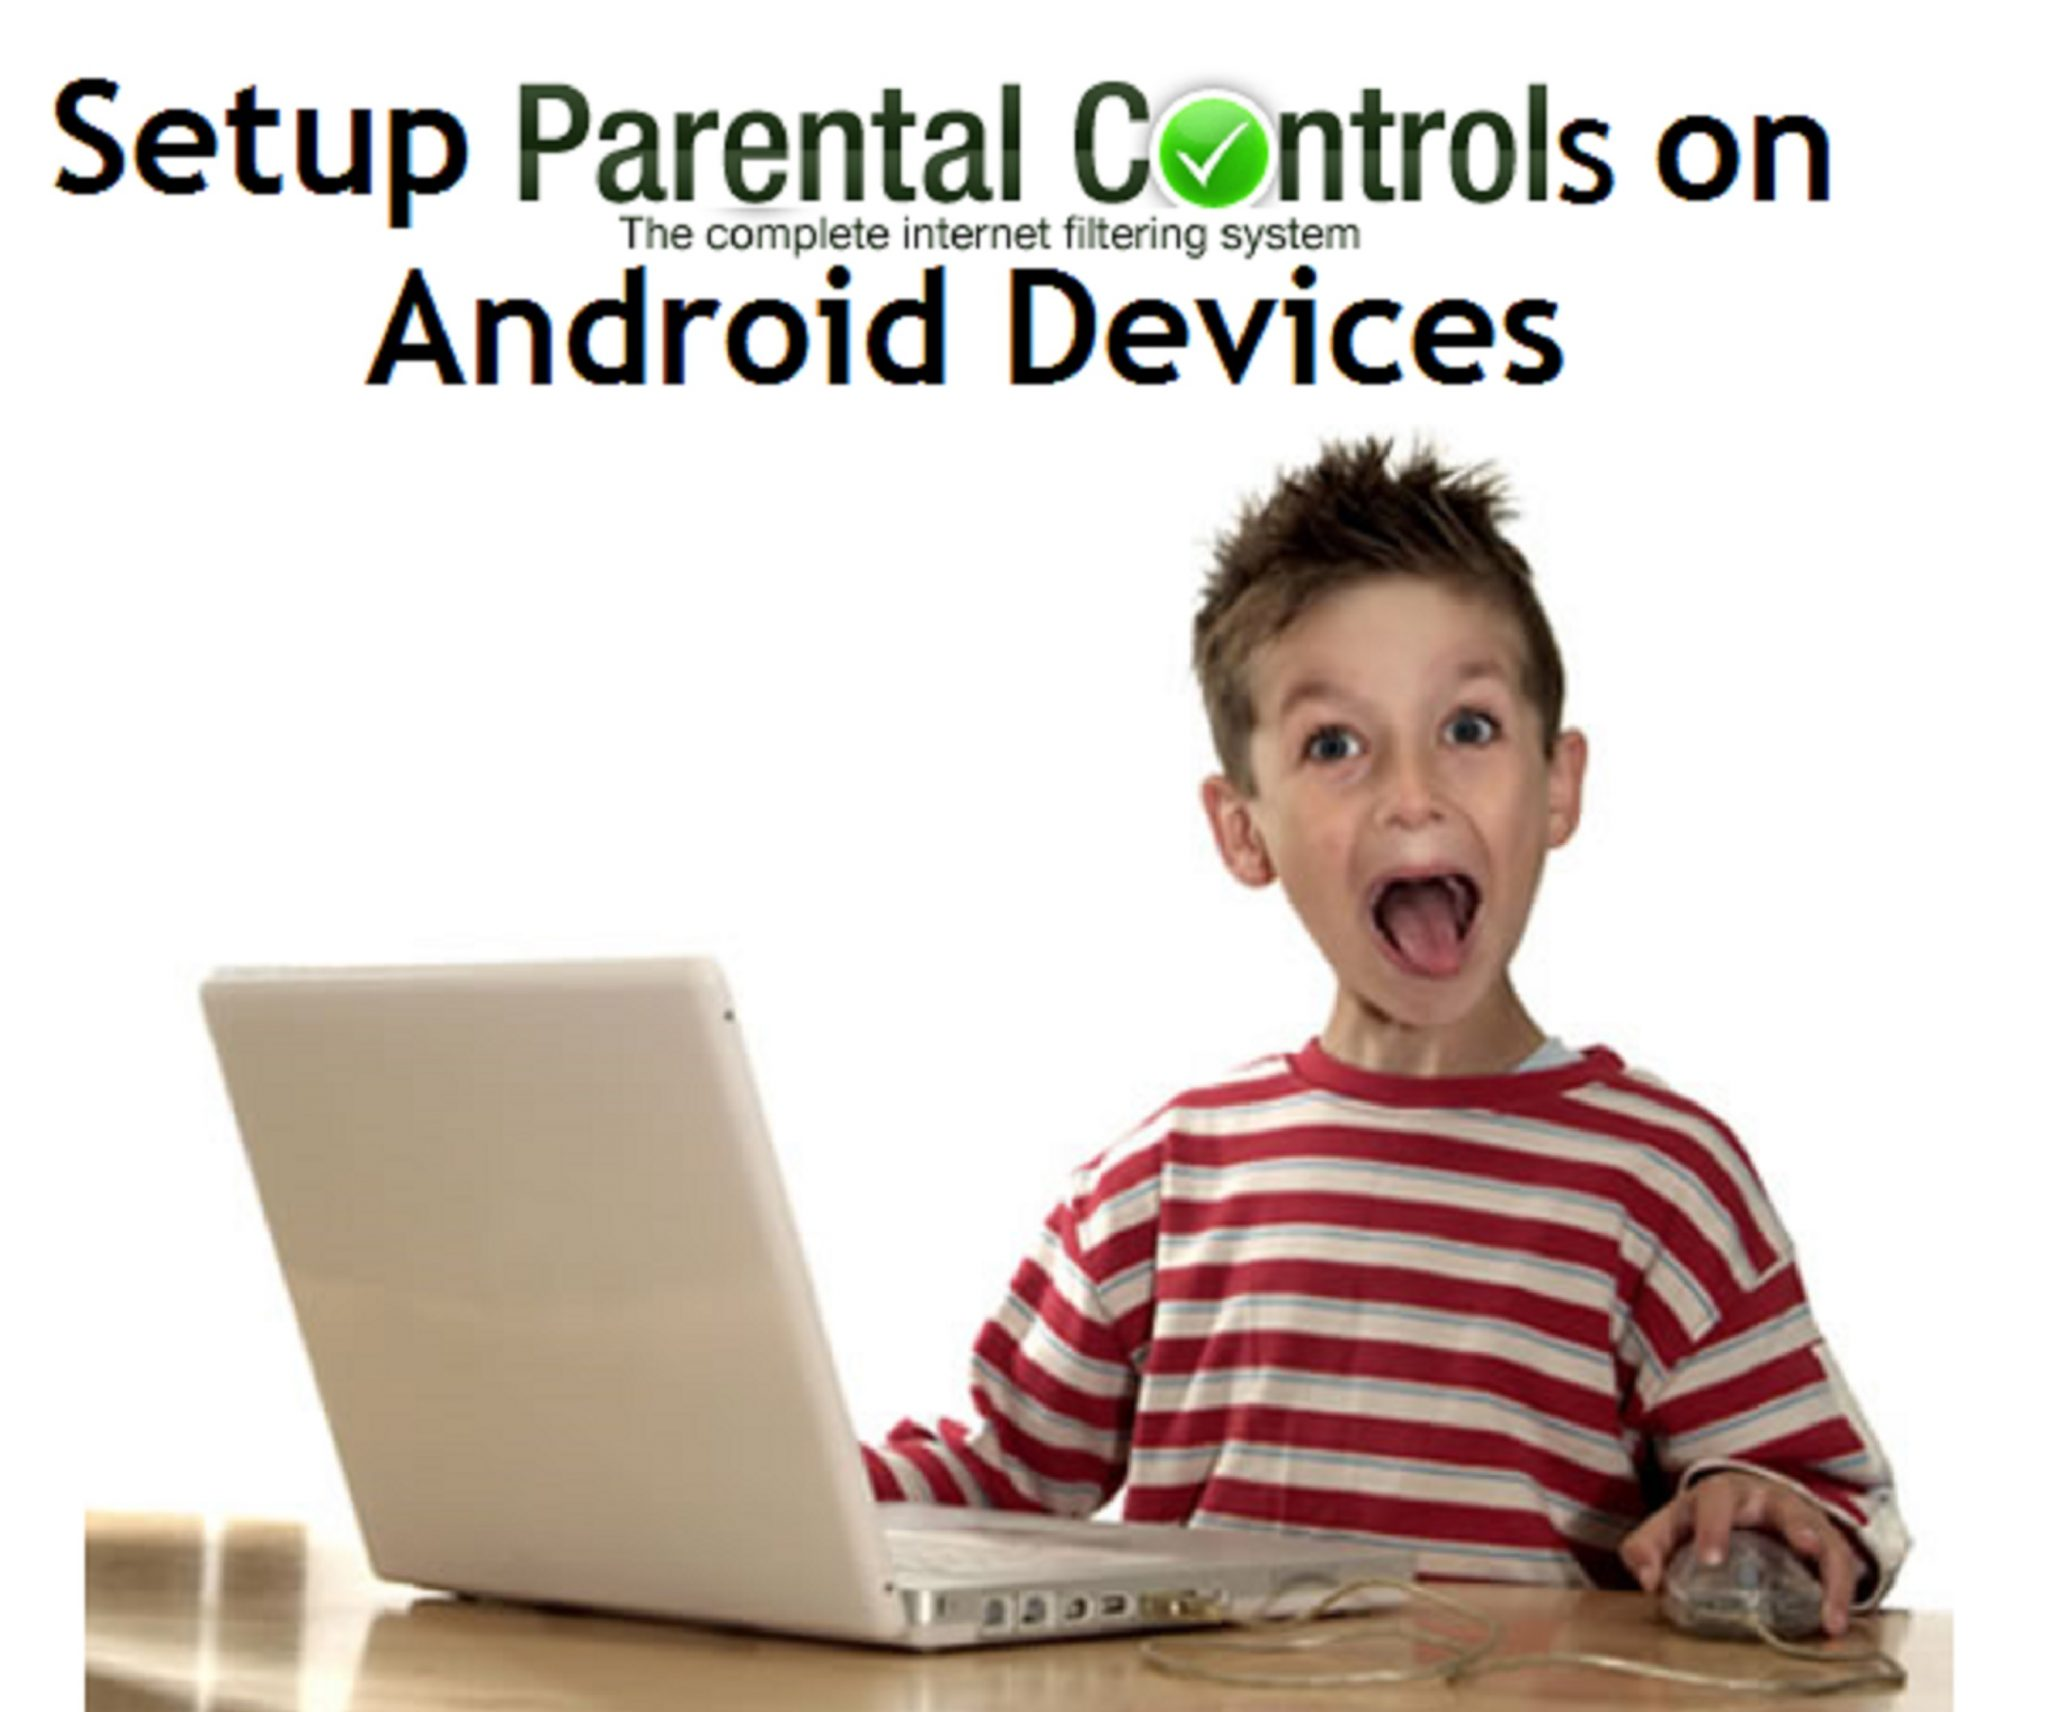 Setup Parental Controls on Android